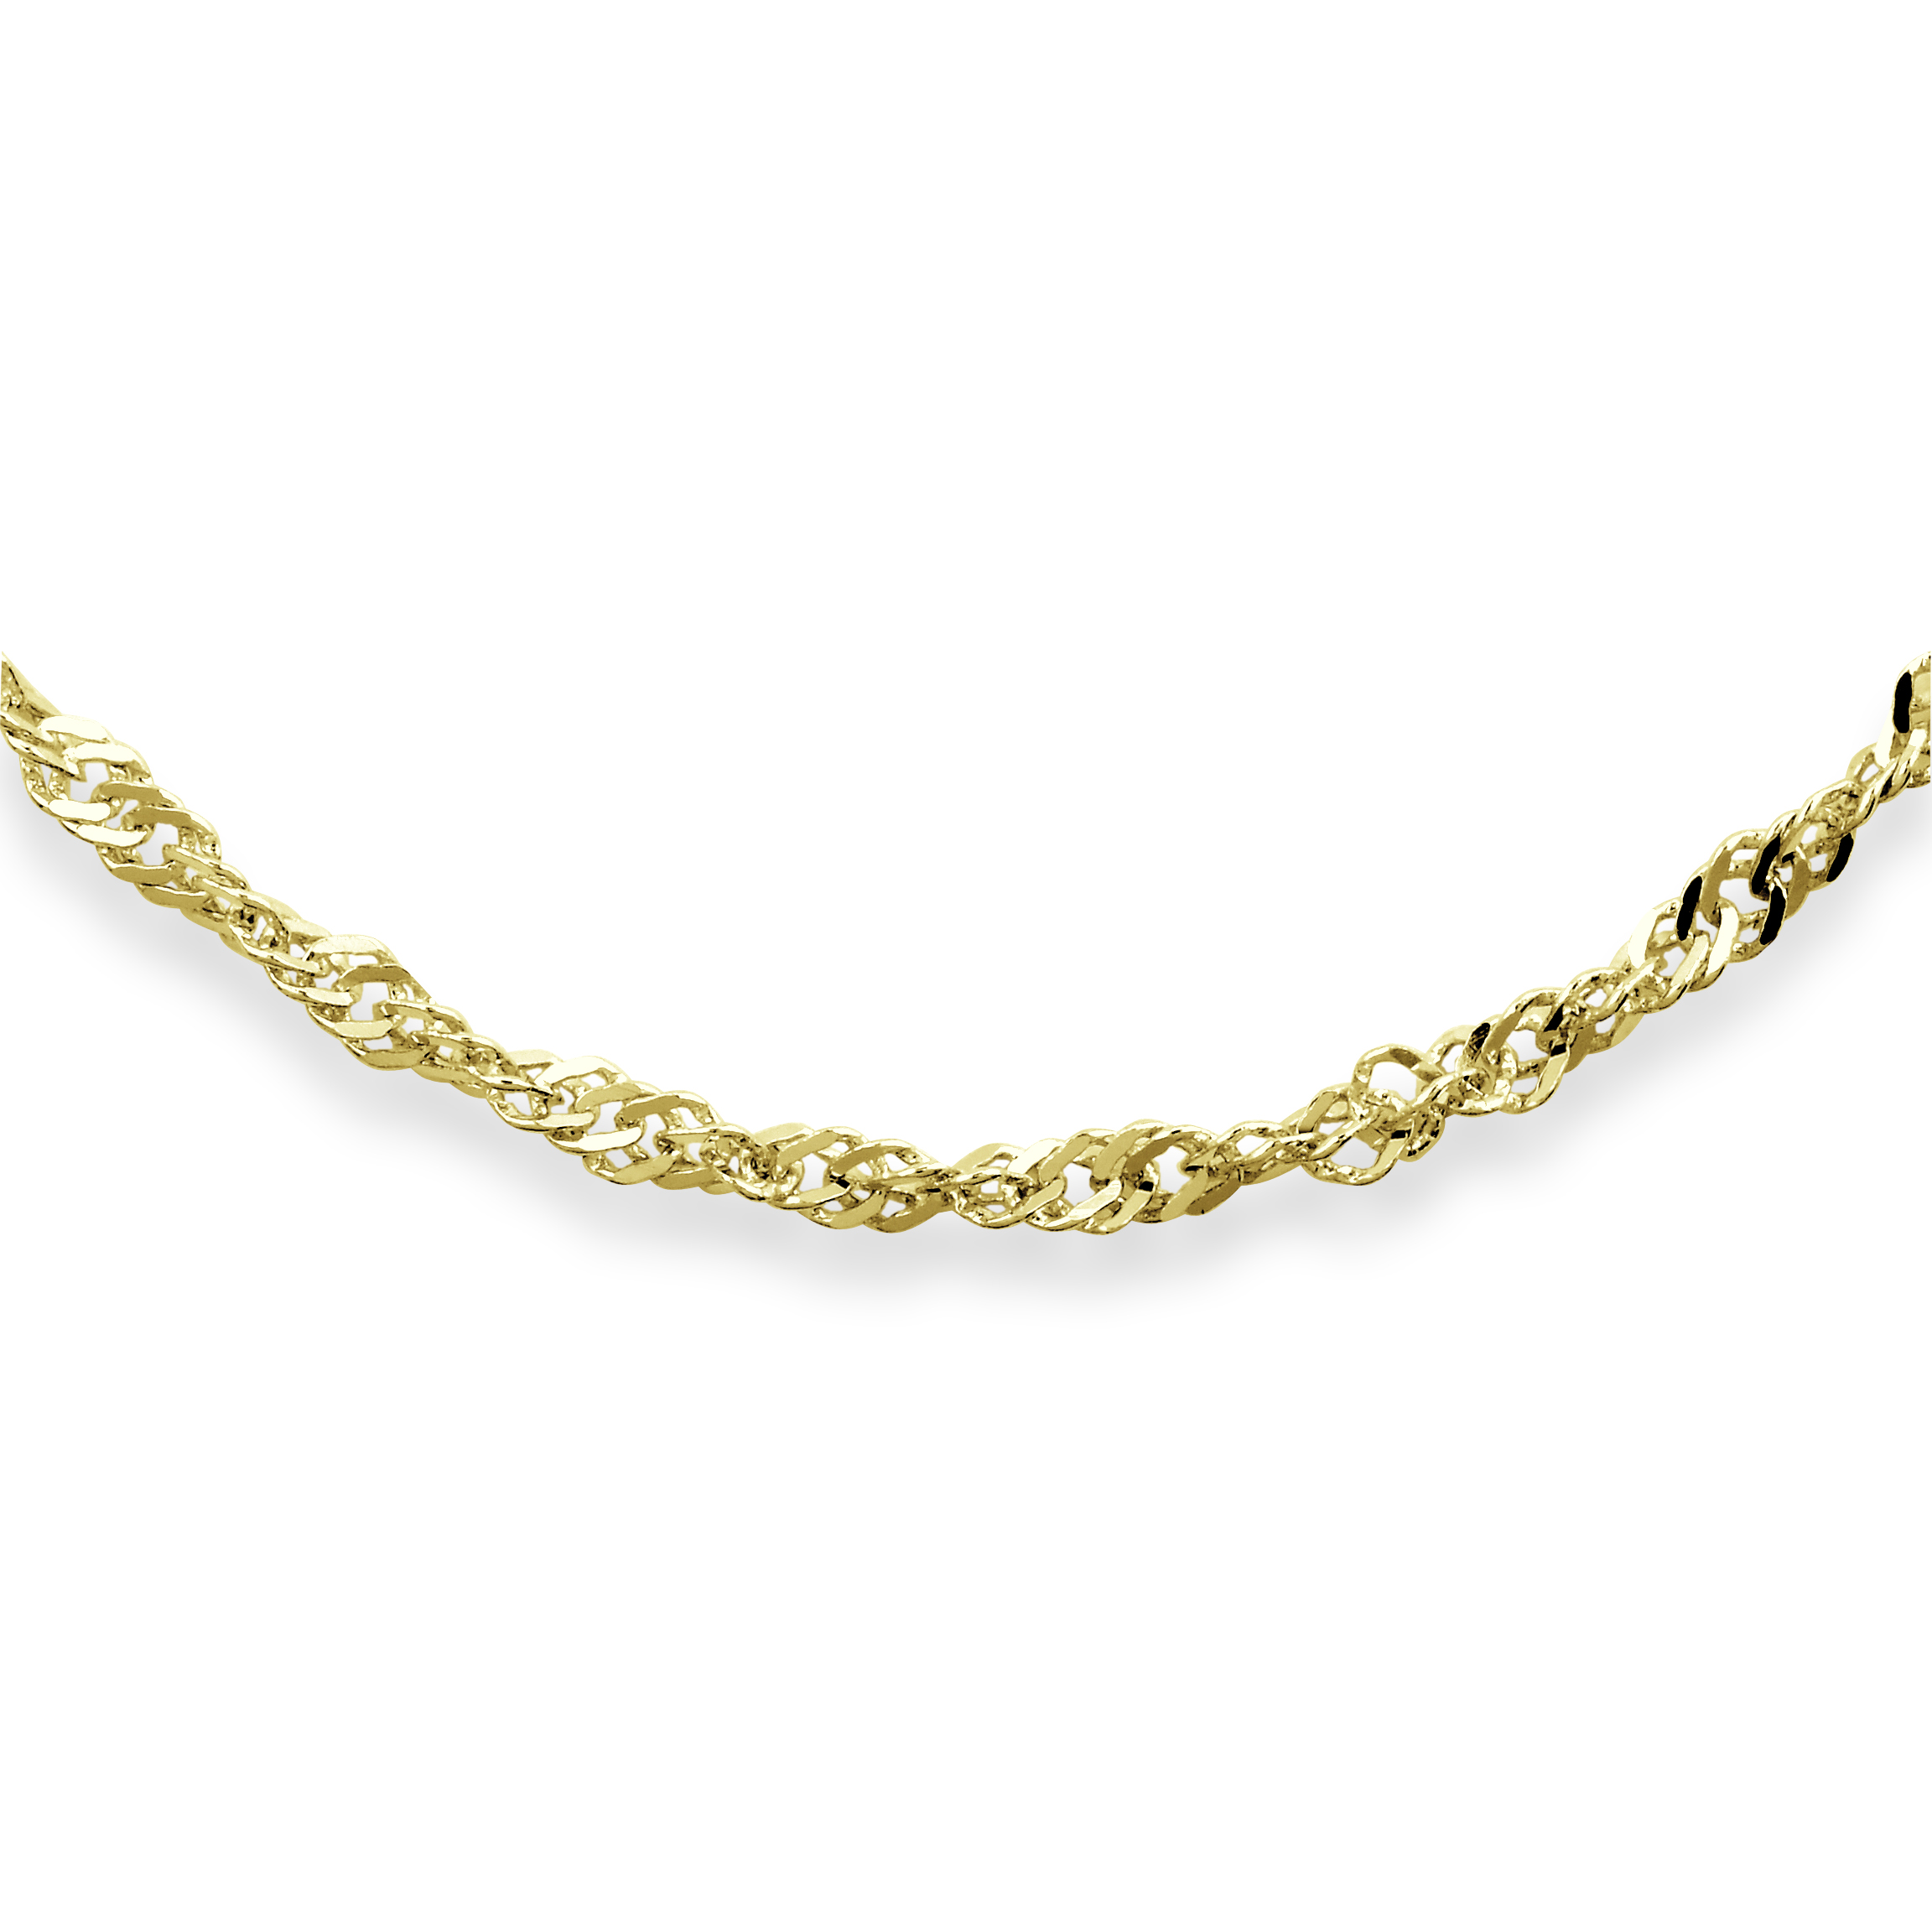 20'' Singapore Chain for women - 10K yellow Gold 20'' Lady's Singapore Chain - 10K yellow Gold